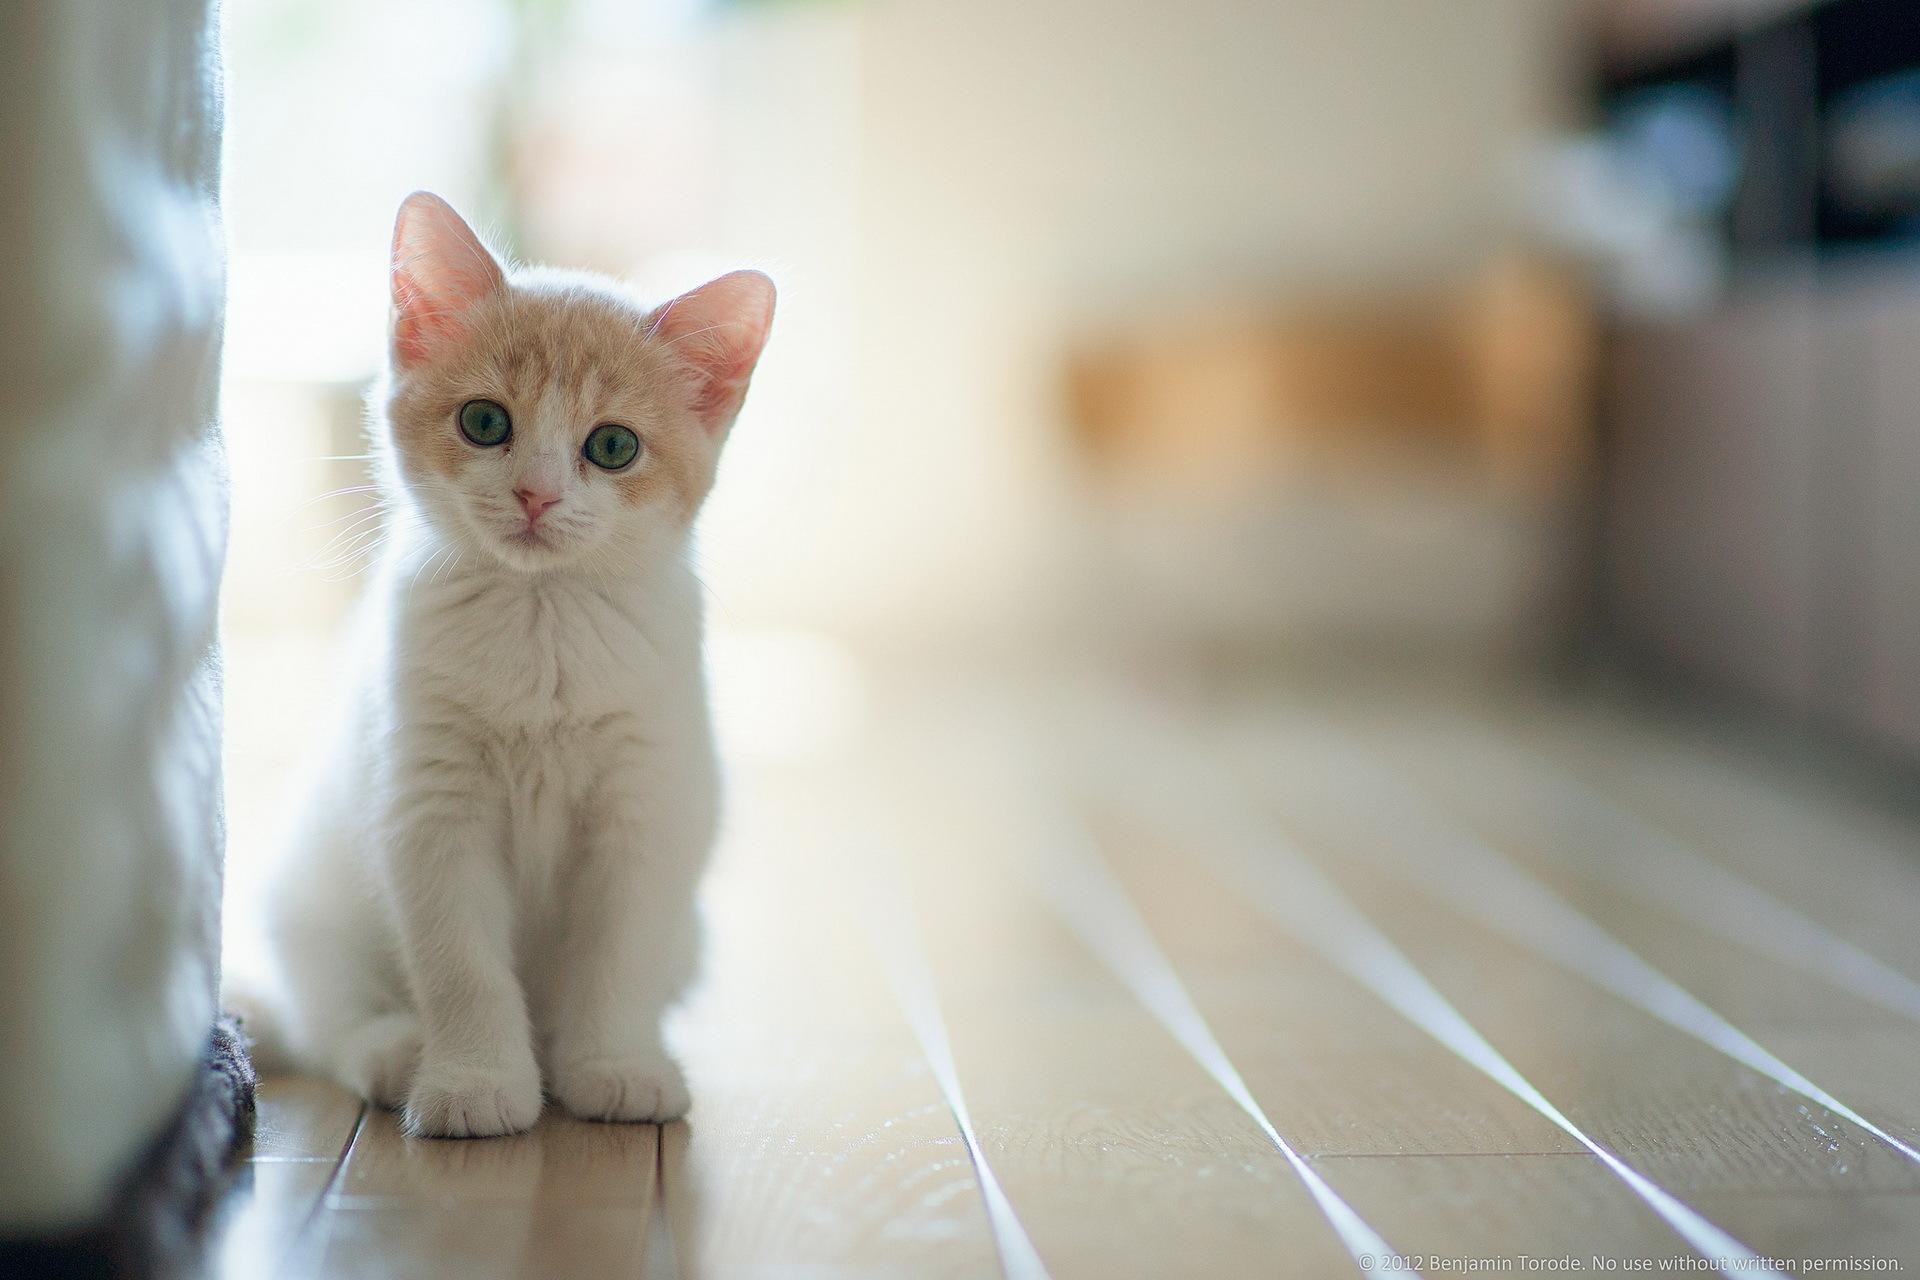 Cute <b>Images</b> Of <b>Cat</b> - <b>wallpaper hd</b>